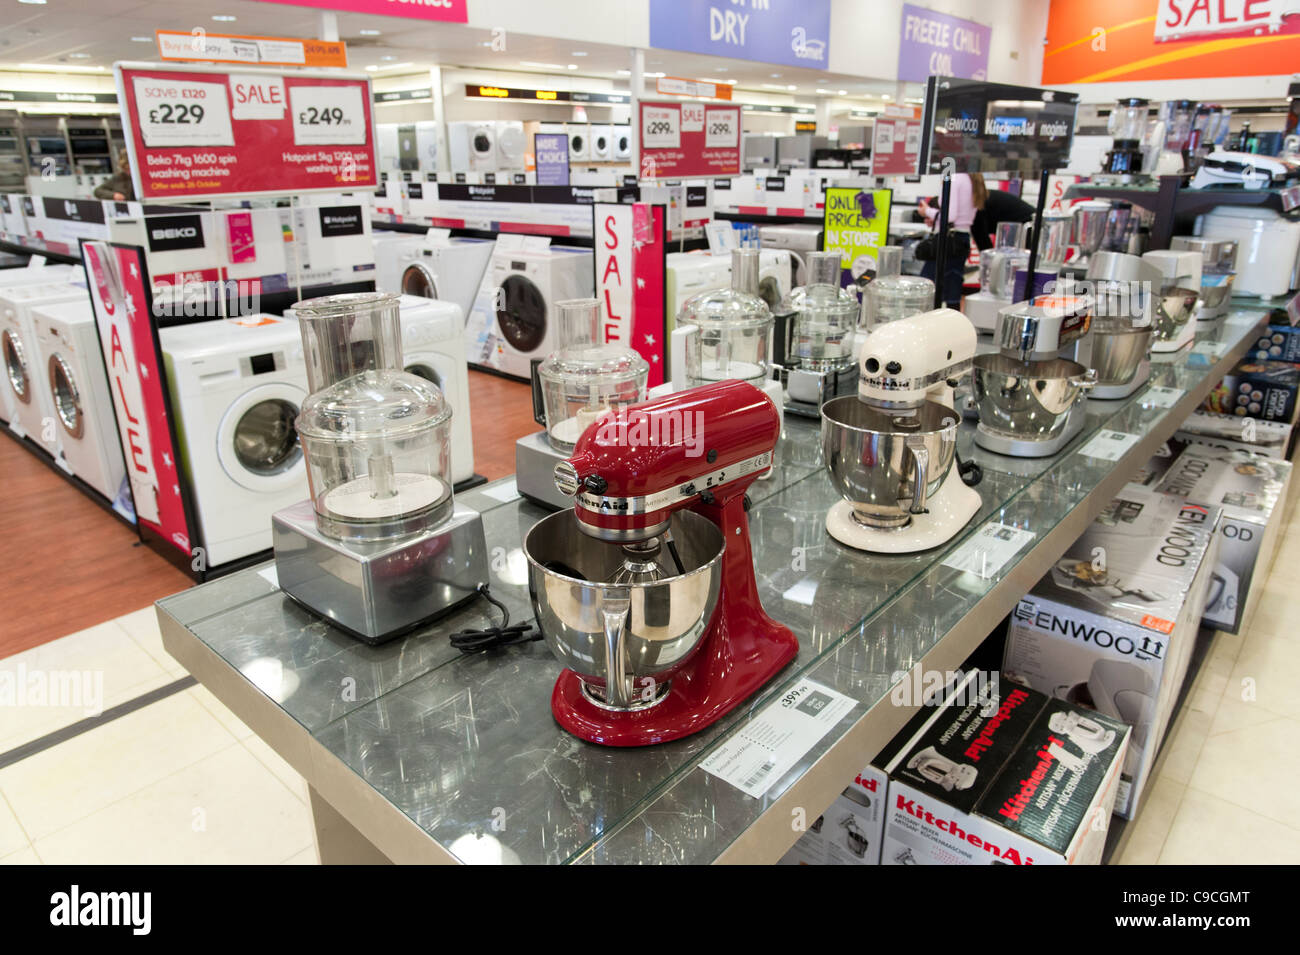 Uncategorized Kitchen Appliances Outlet Store electrical kitchen appliances in comet store london england uk uk